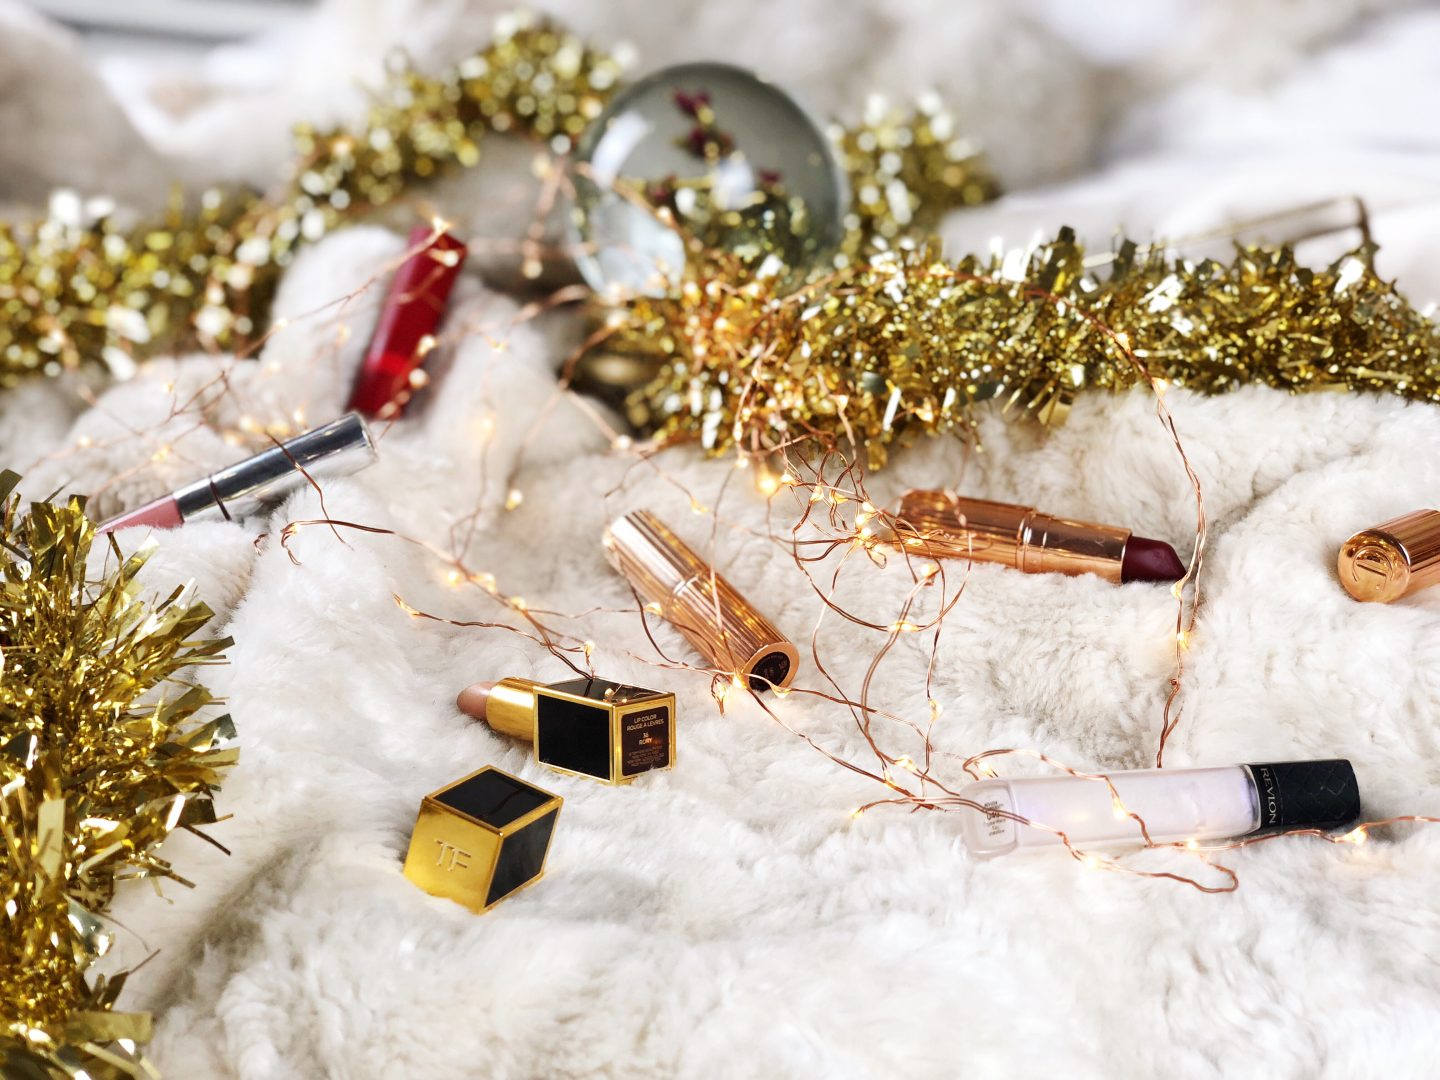 Blogmas 2017 Day 21: The Perfect Lipsticks for Winter